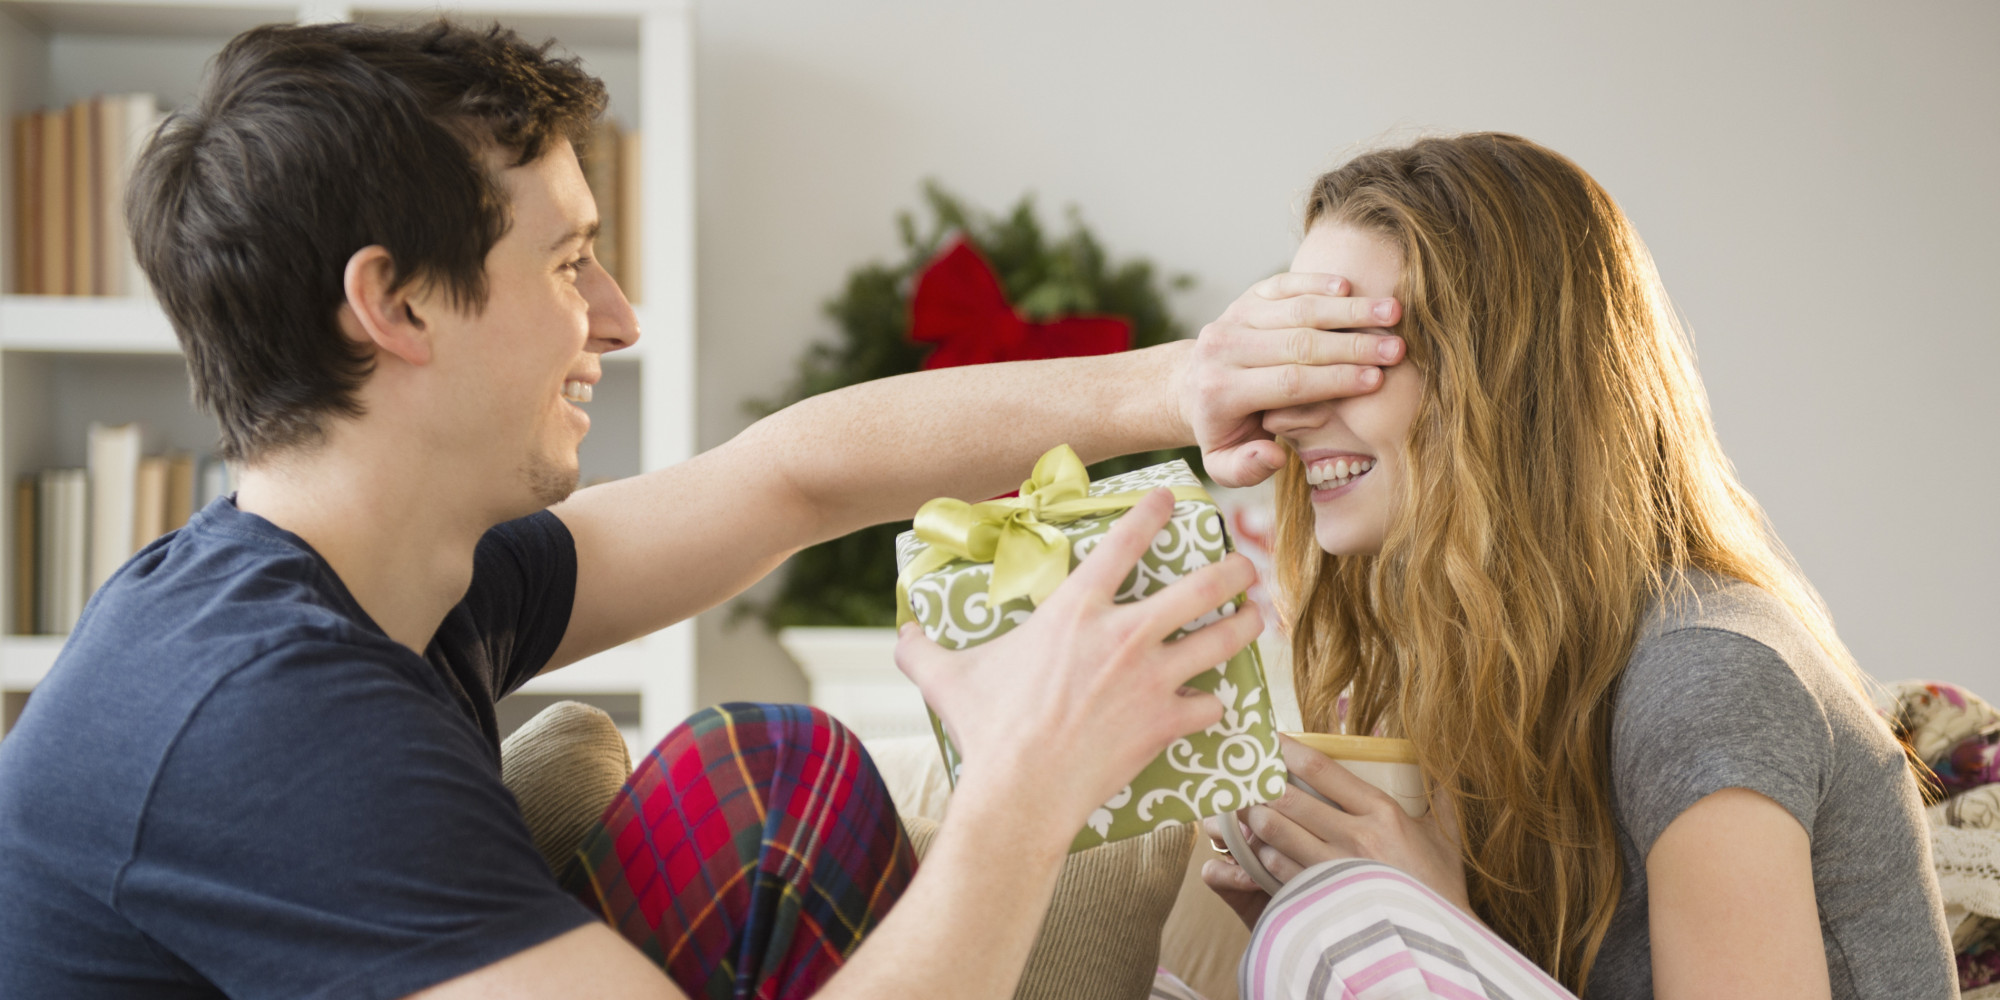 Man surprising girlfriend with gift at Christmas